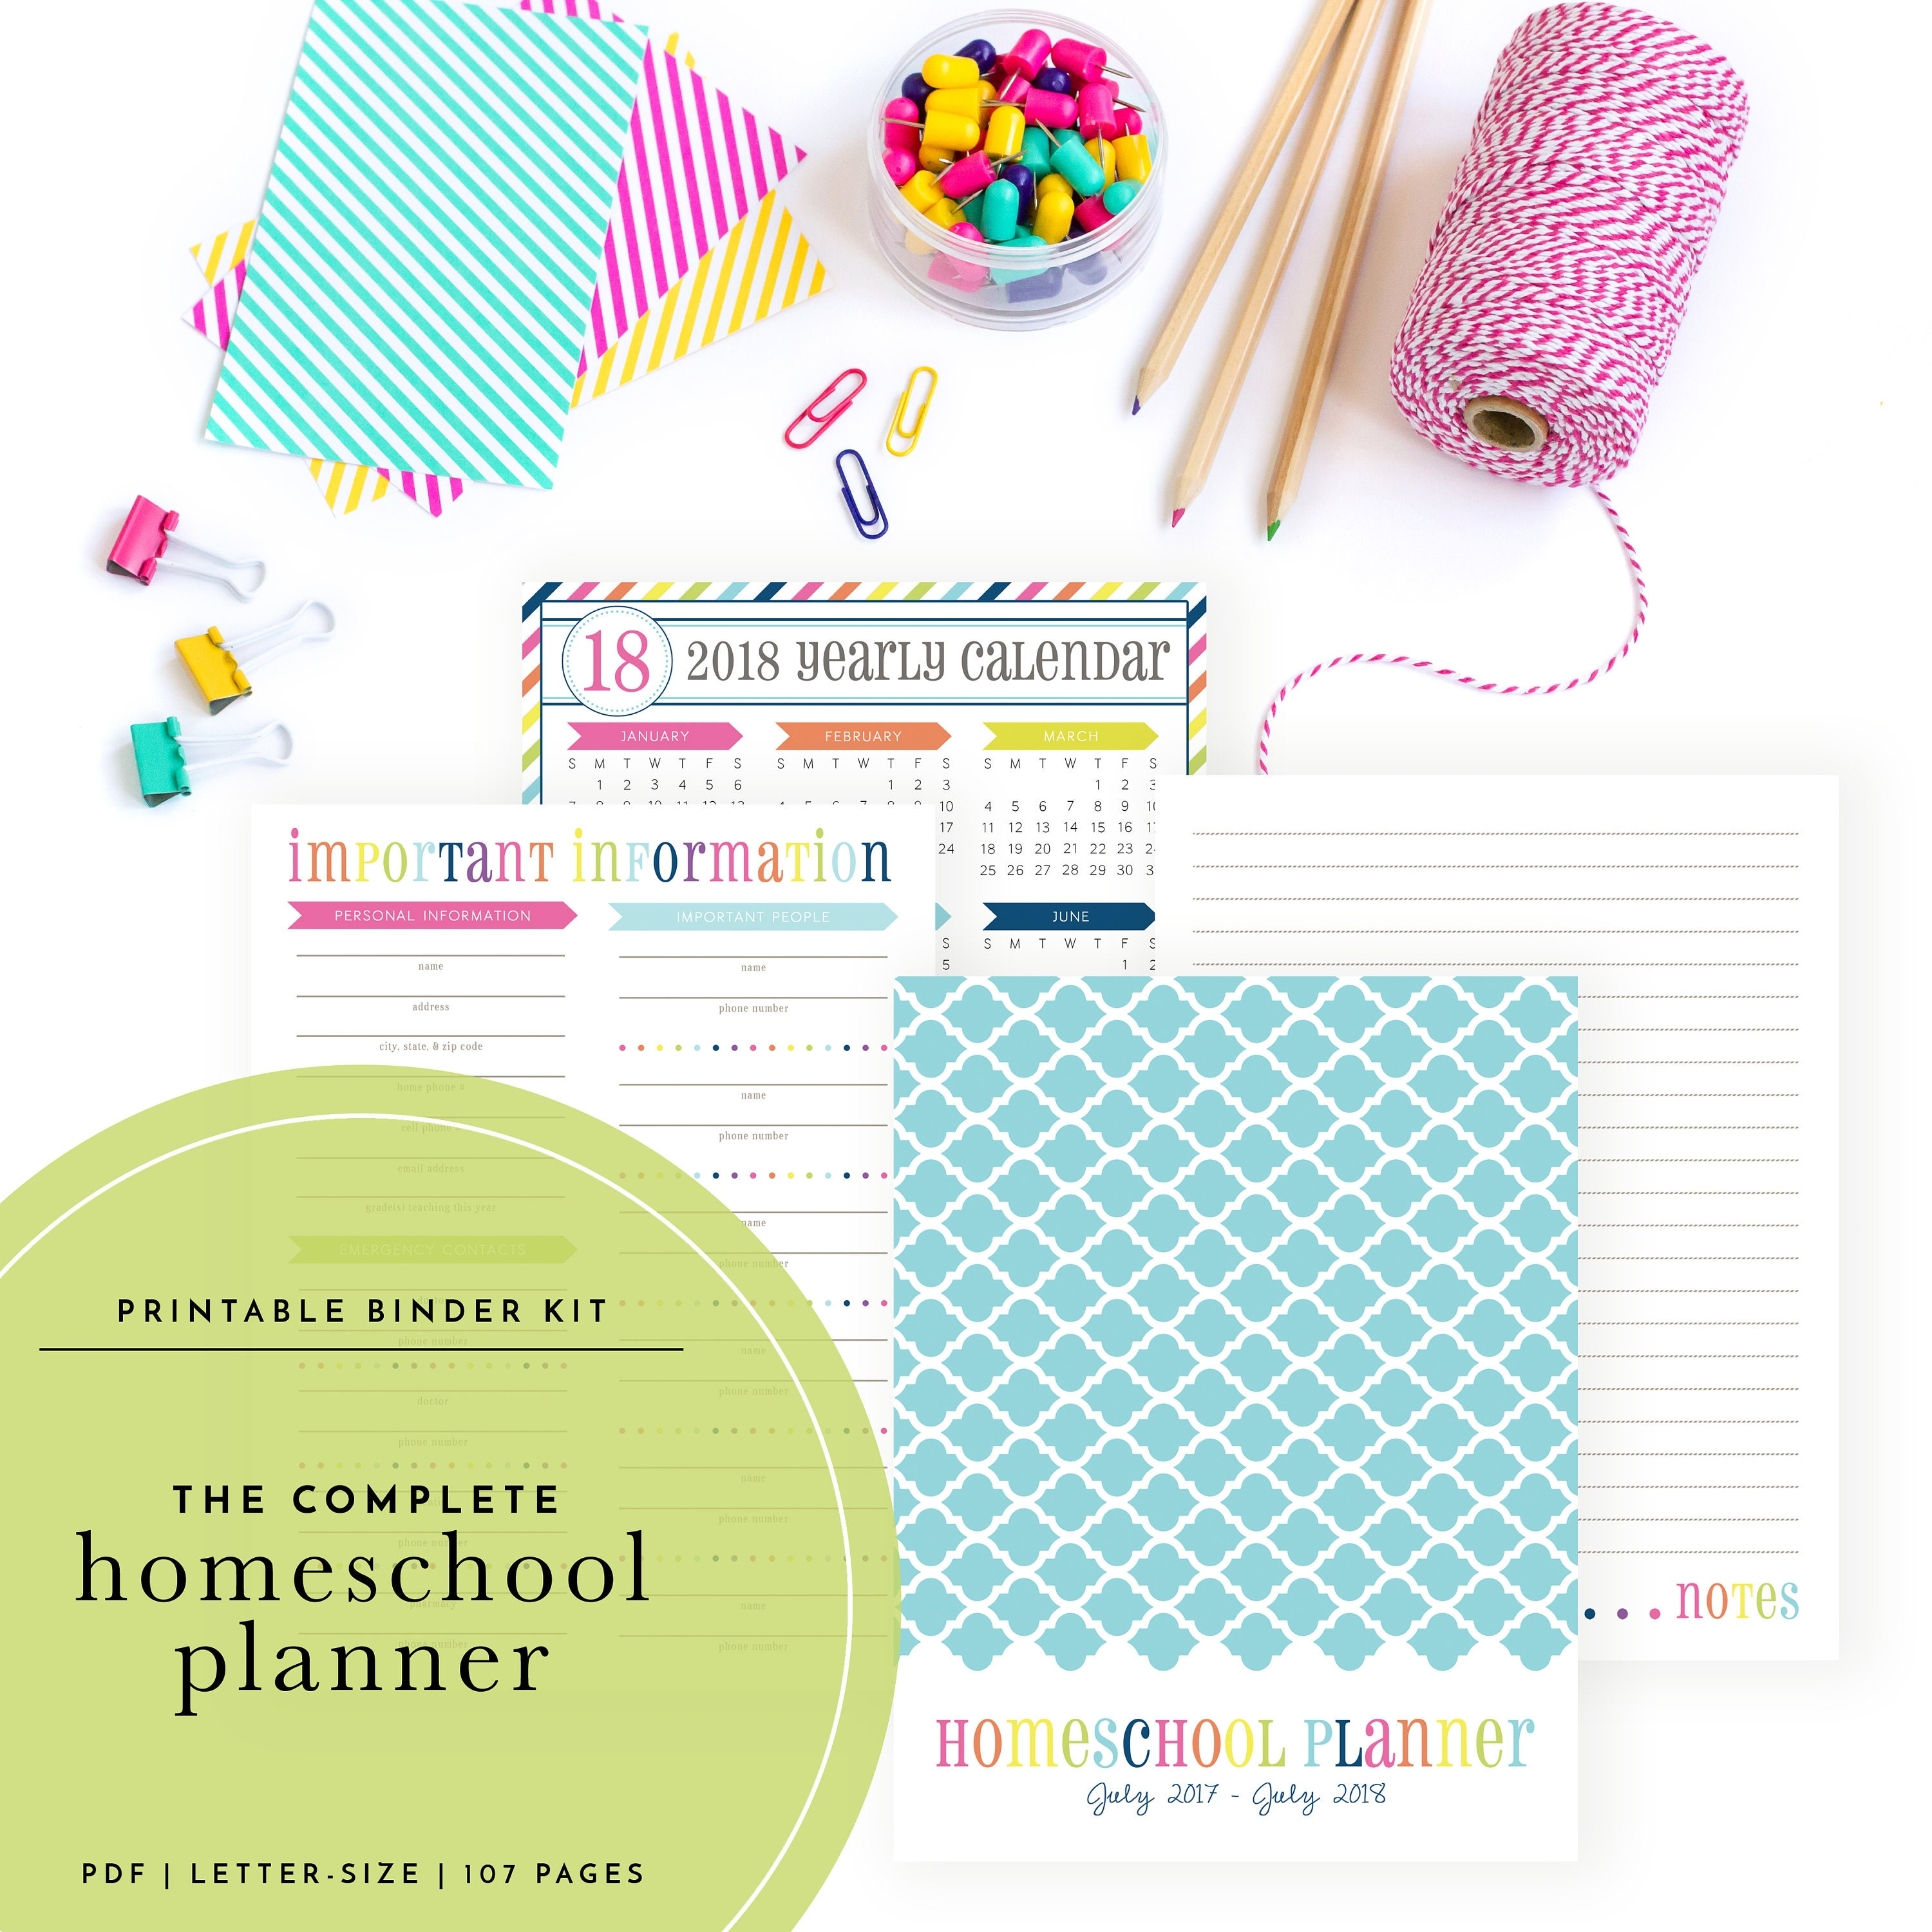 The Complete 2018-2019 Homeschool Planning Kit Includes | Etsy